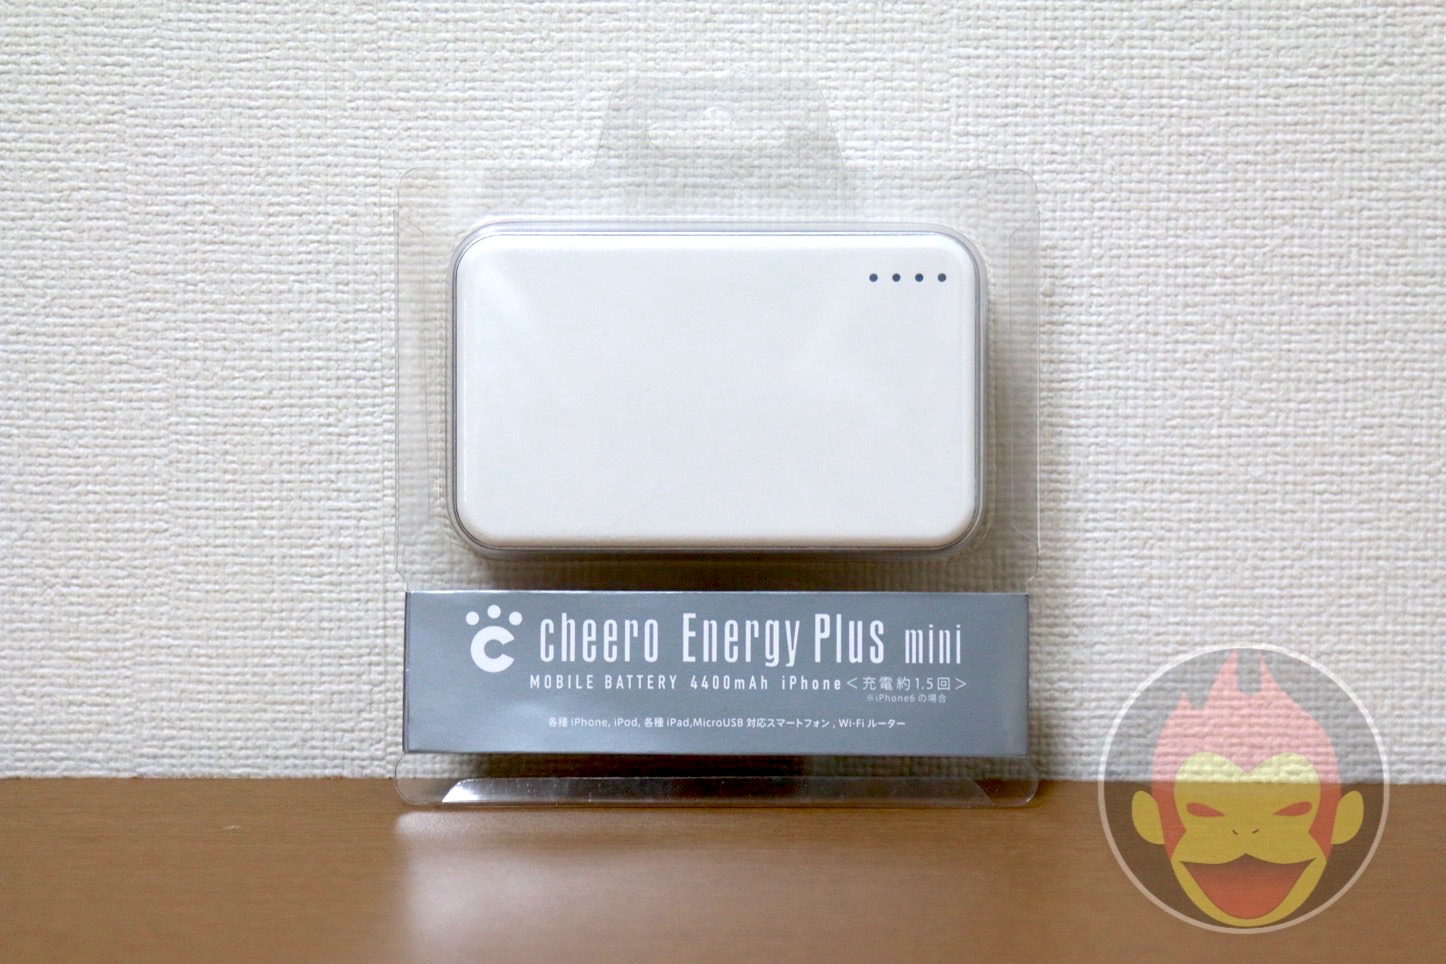 cheero-Energy-Plus-mini-45.JPG